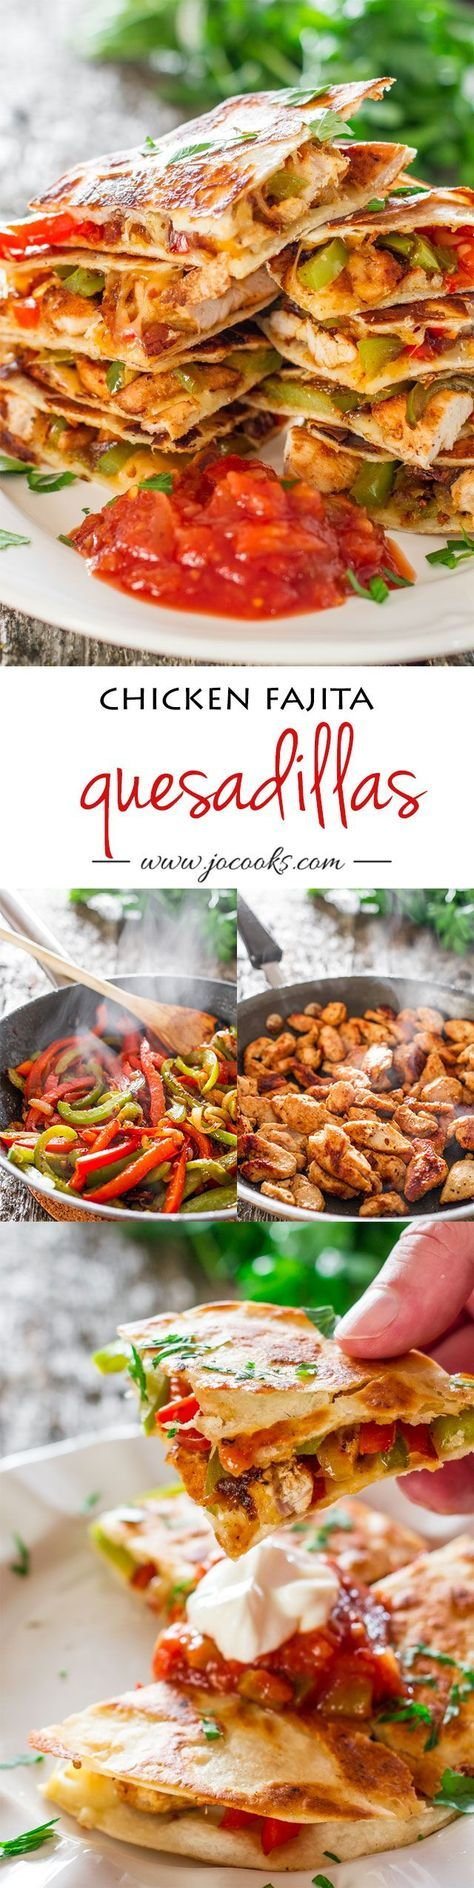 Chicken Fajita Quesadillas - sauteed onions, red and green peppers, perfectly seasoned chicken breast, melted cheese, between two tortillas. Simply yummy. @Jo Cooks